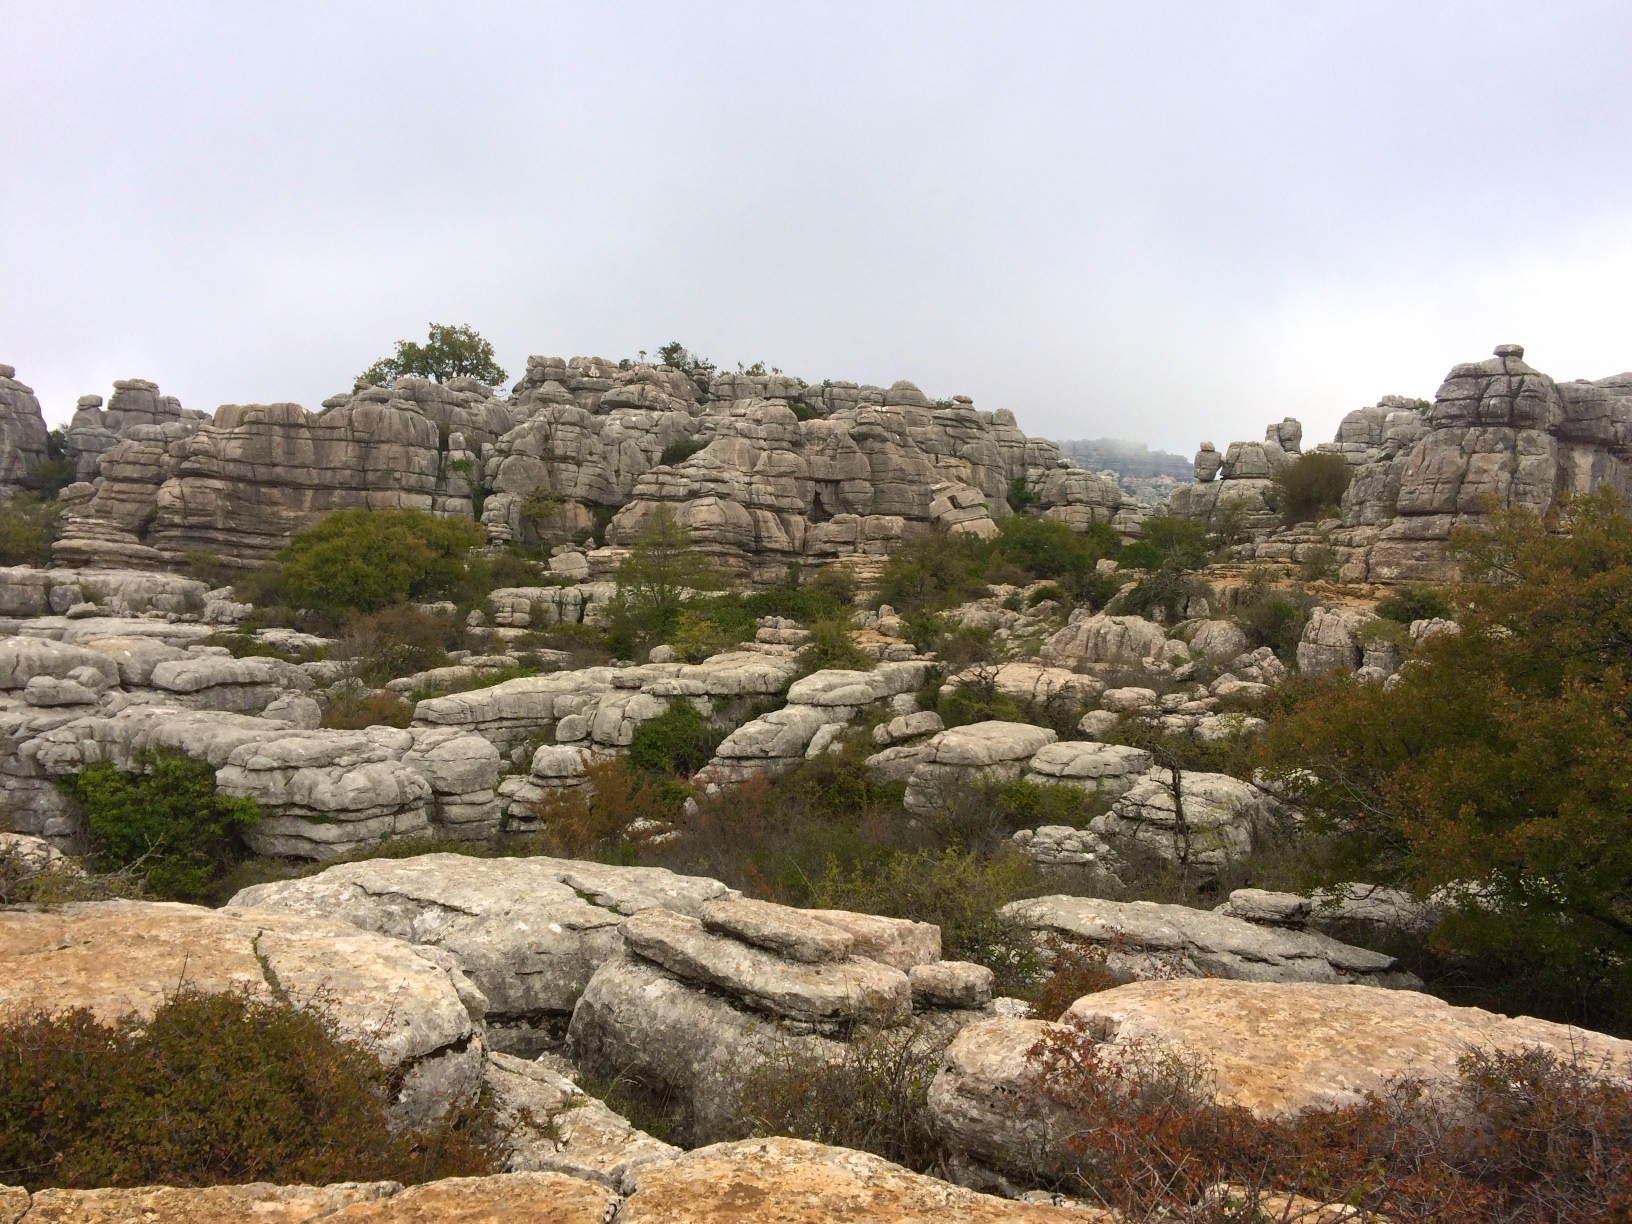 Hiking at El Torcal